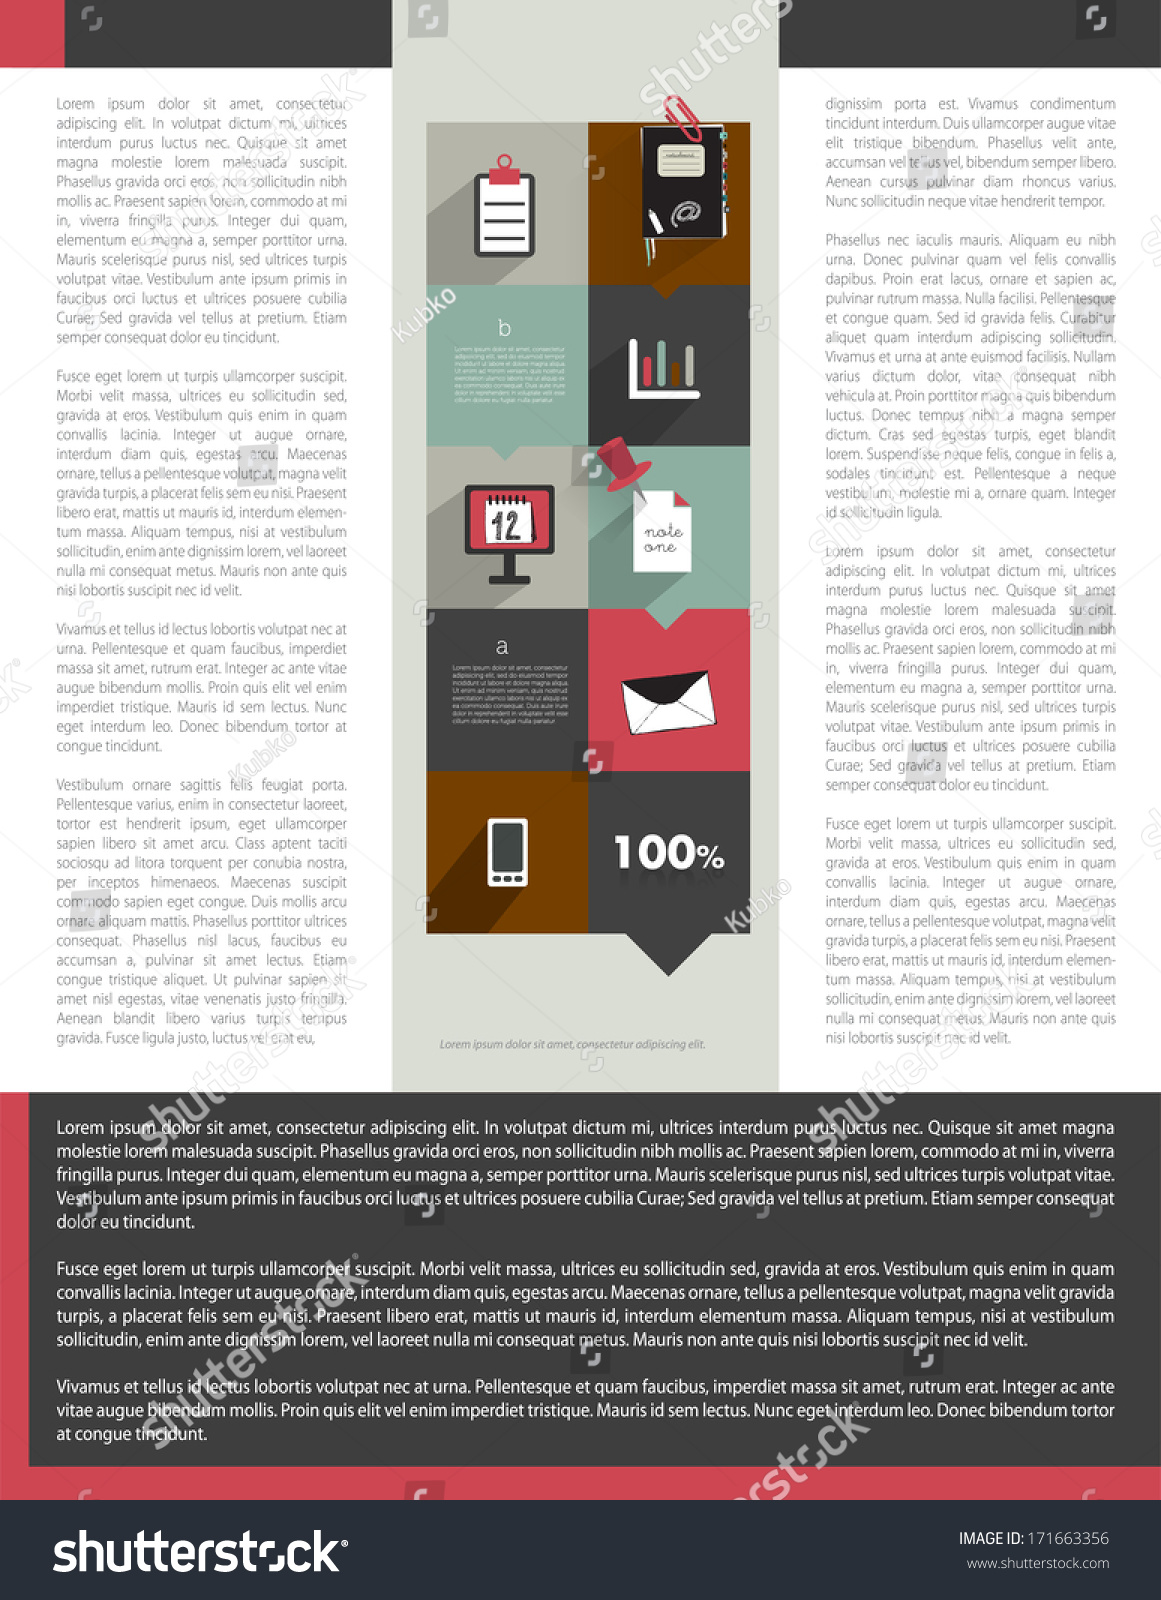 Needs Ysis Template | Nice Business Impact Ysis Template Images Gallery How To